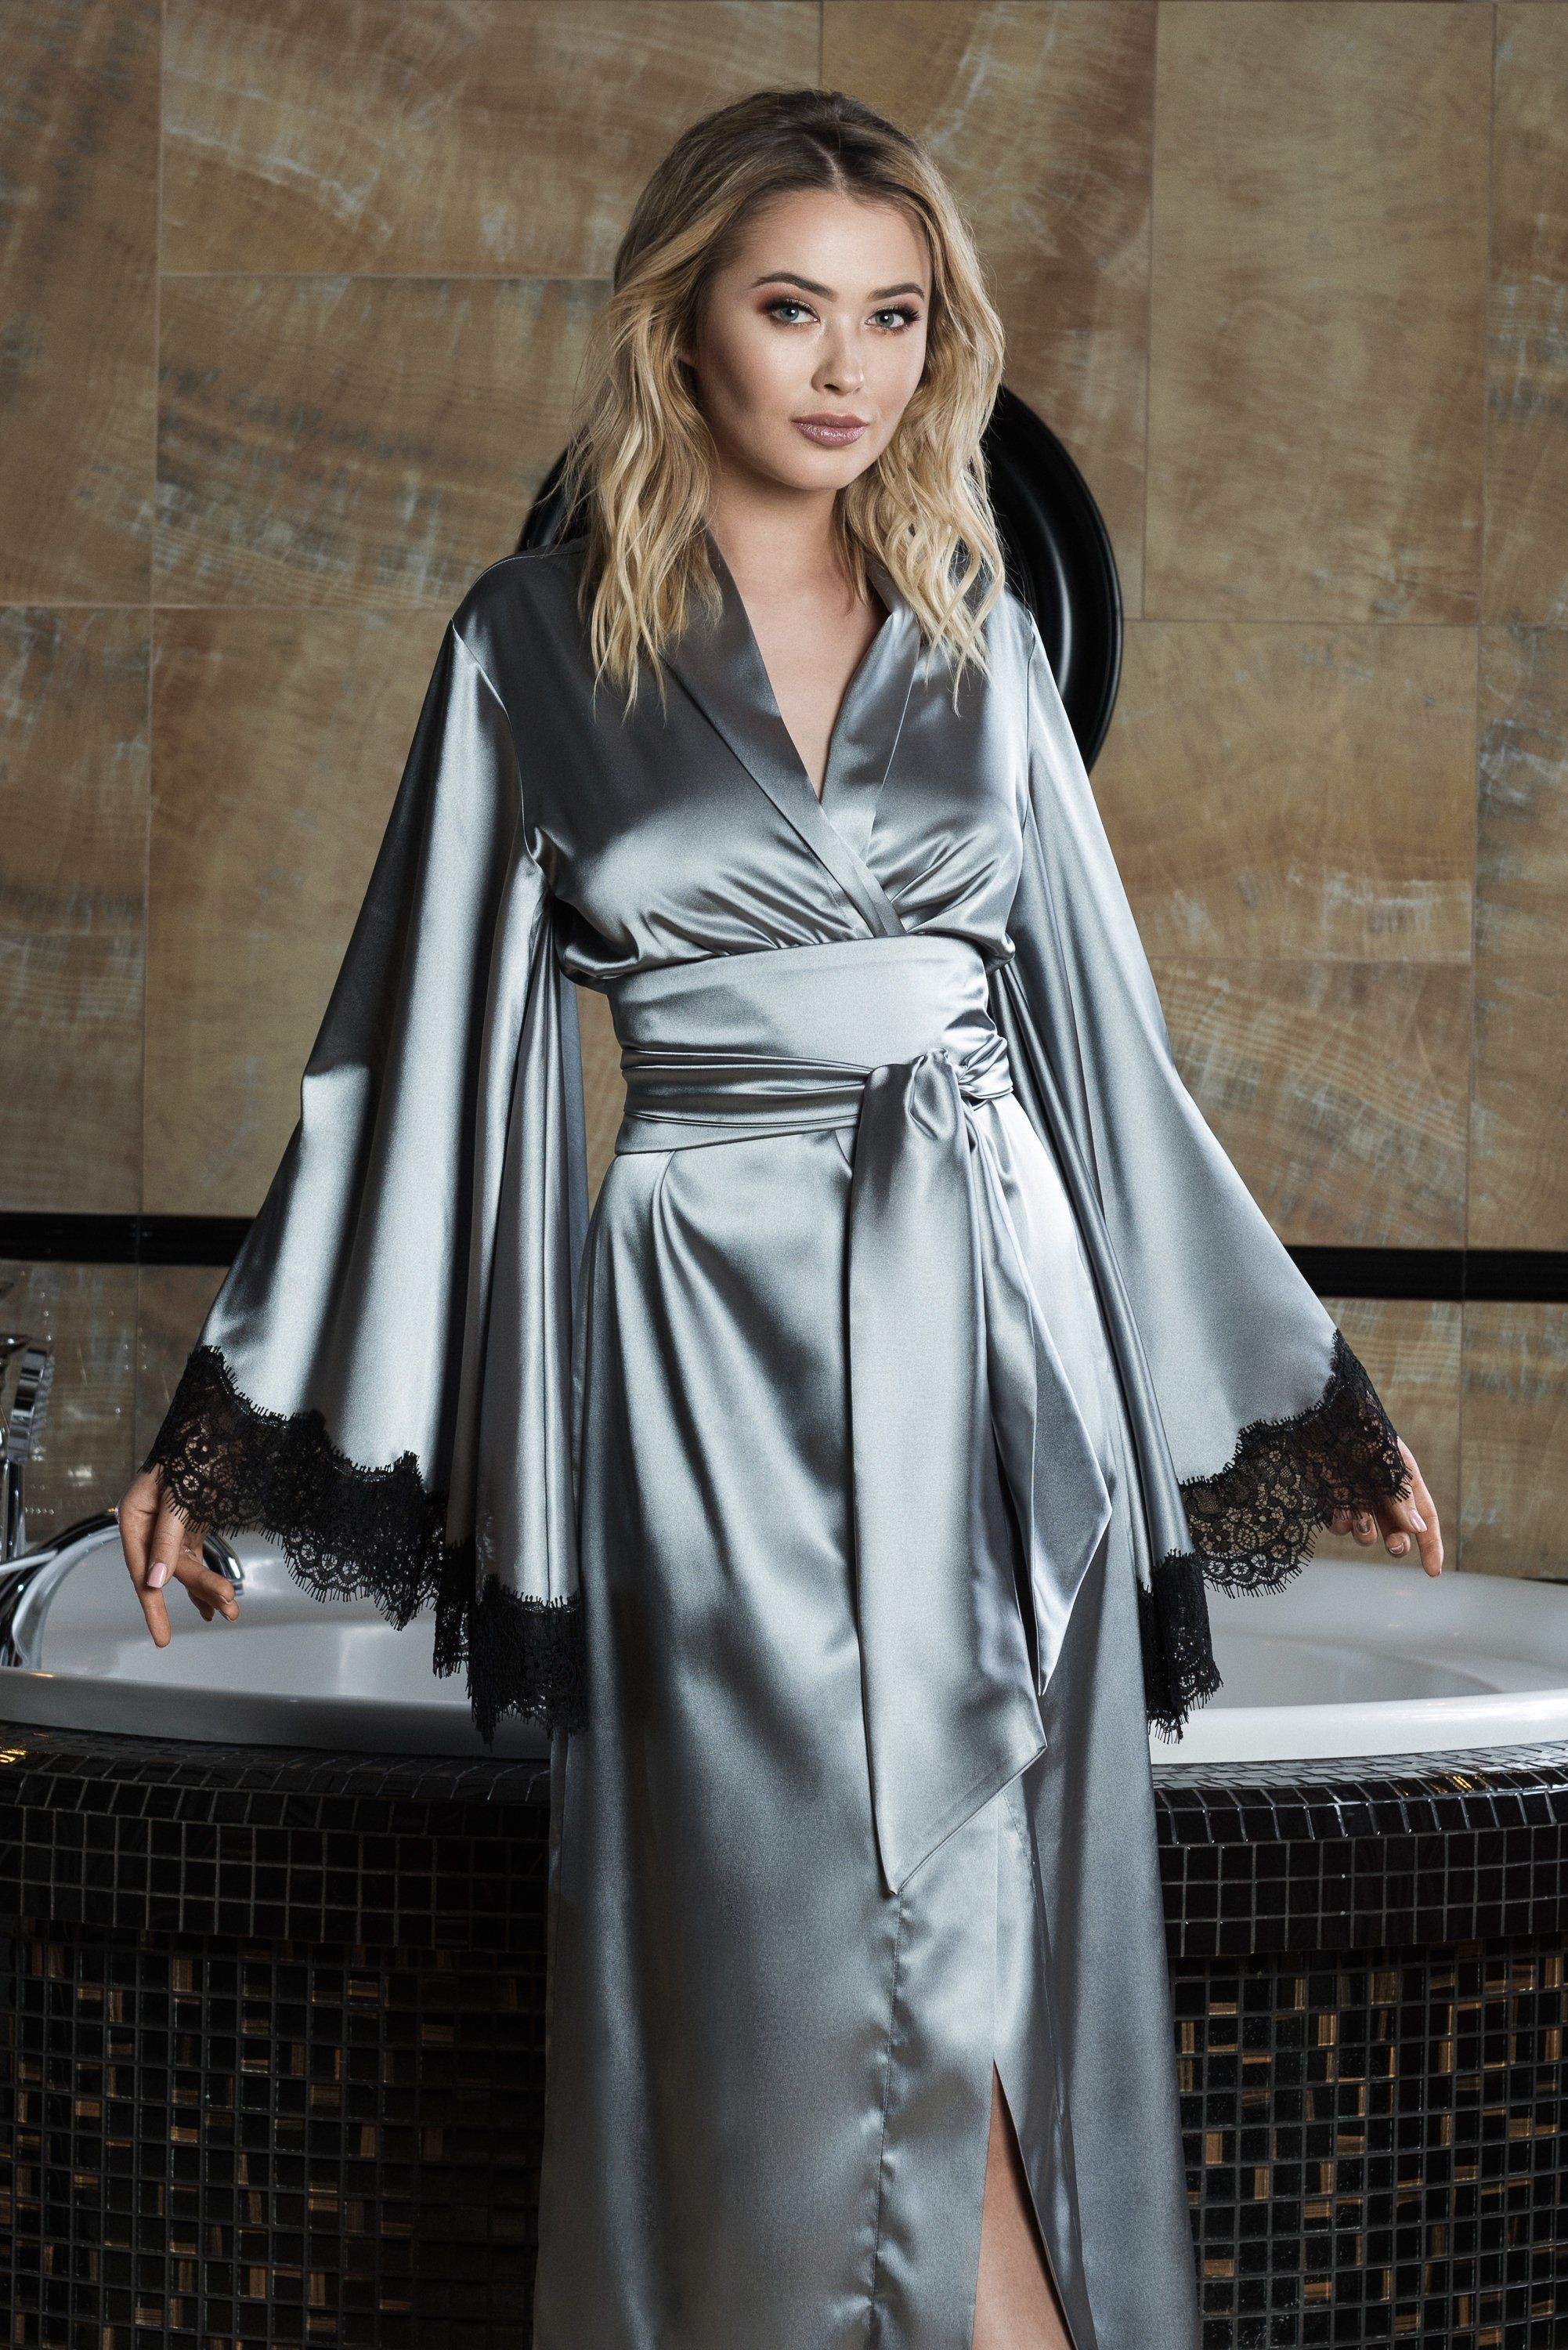 097f80bae4 Silk Satin Robe Grey Robe Silk Kimono Women s Robe